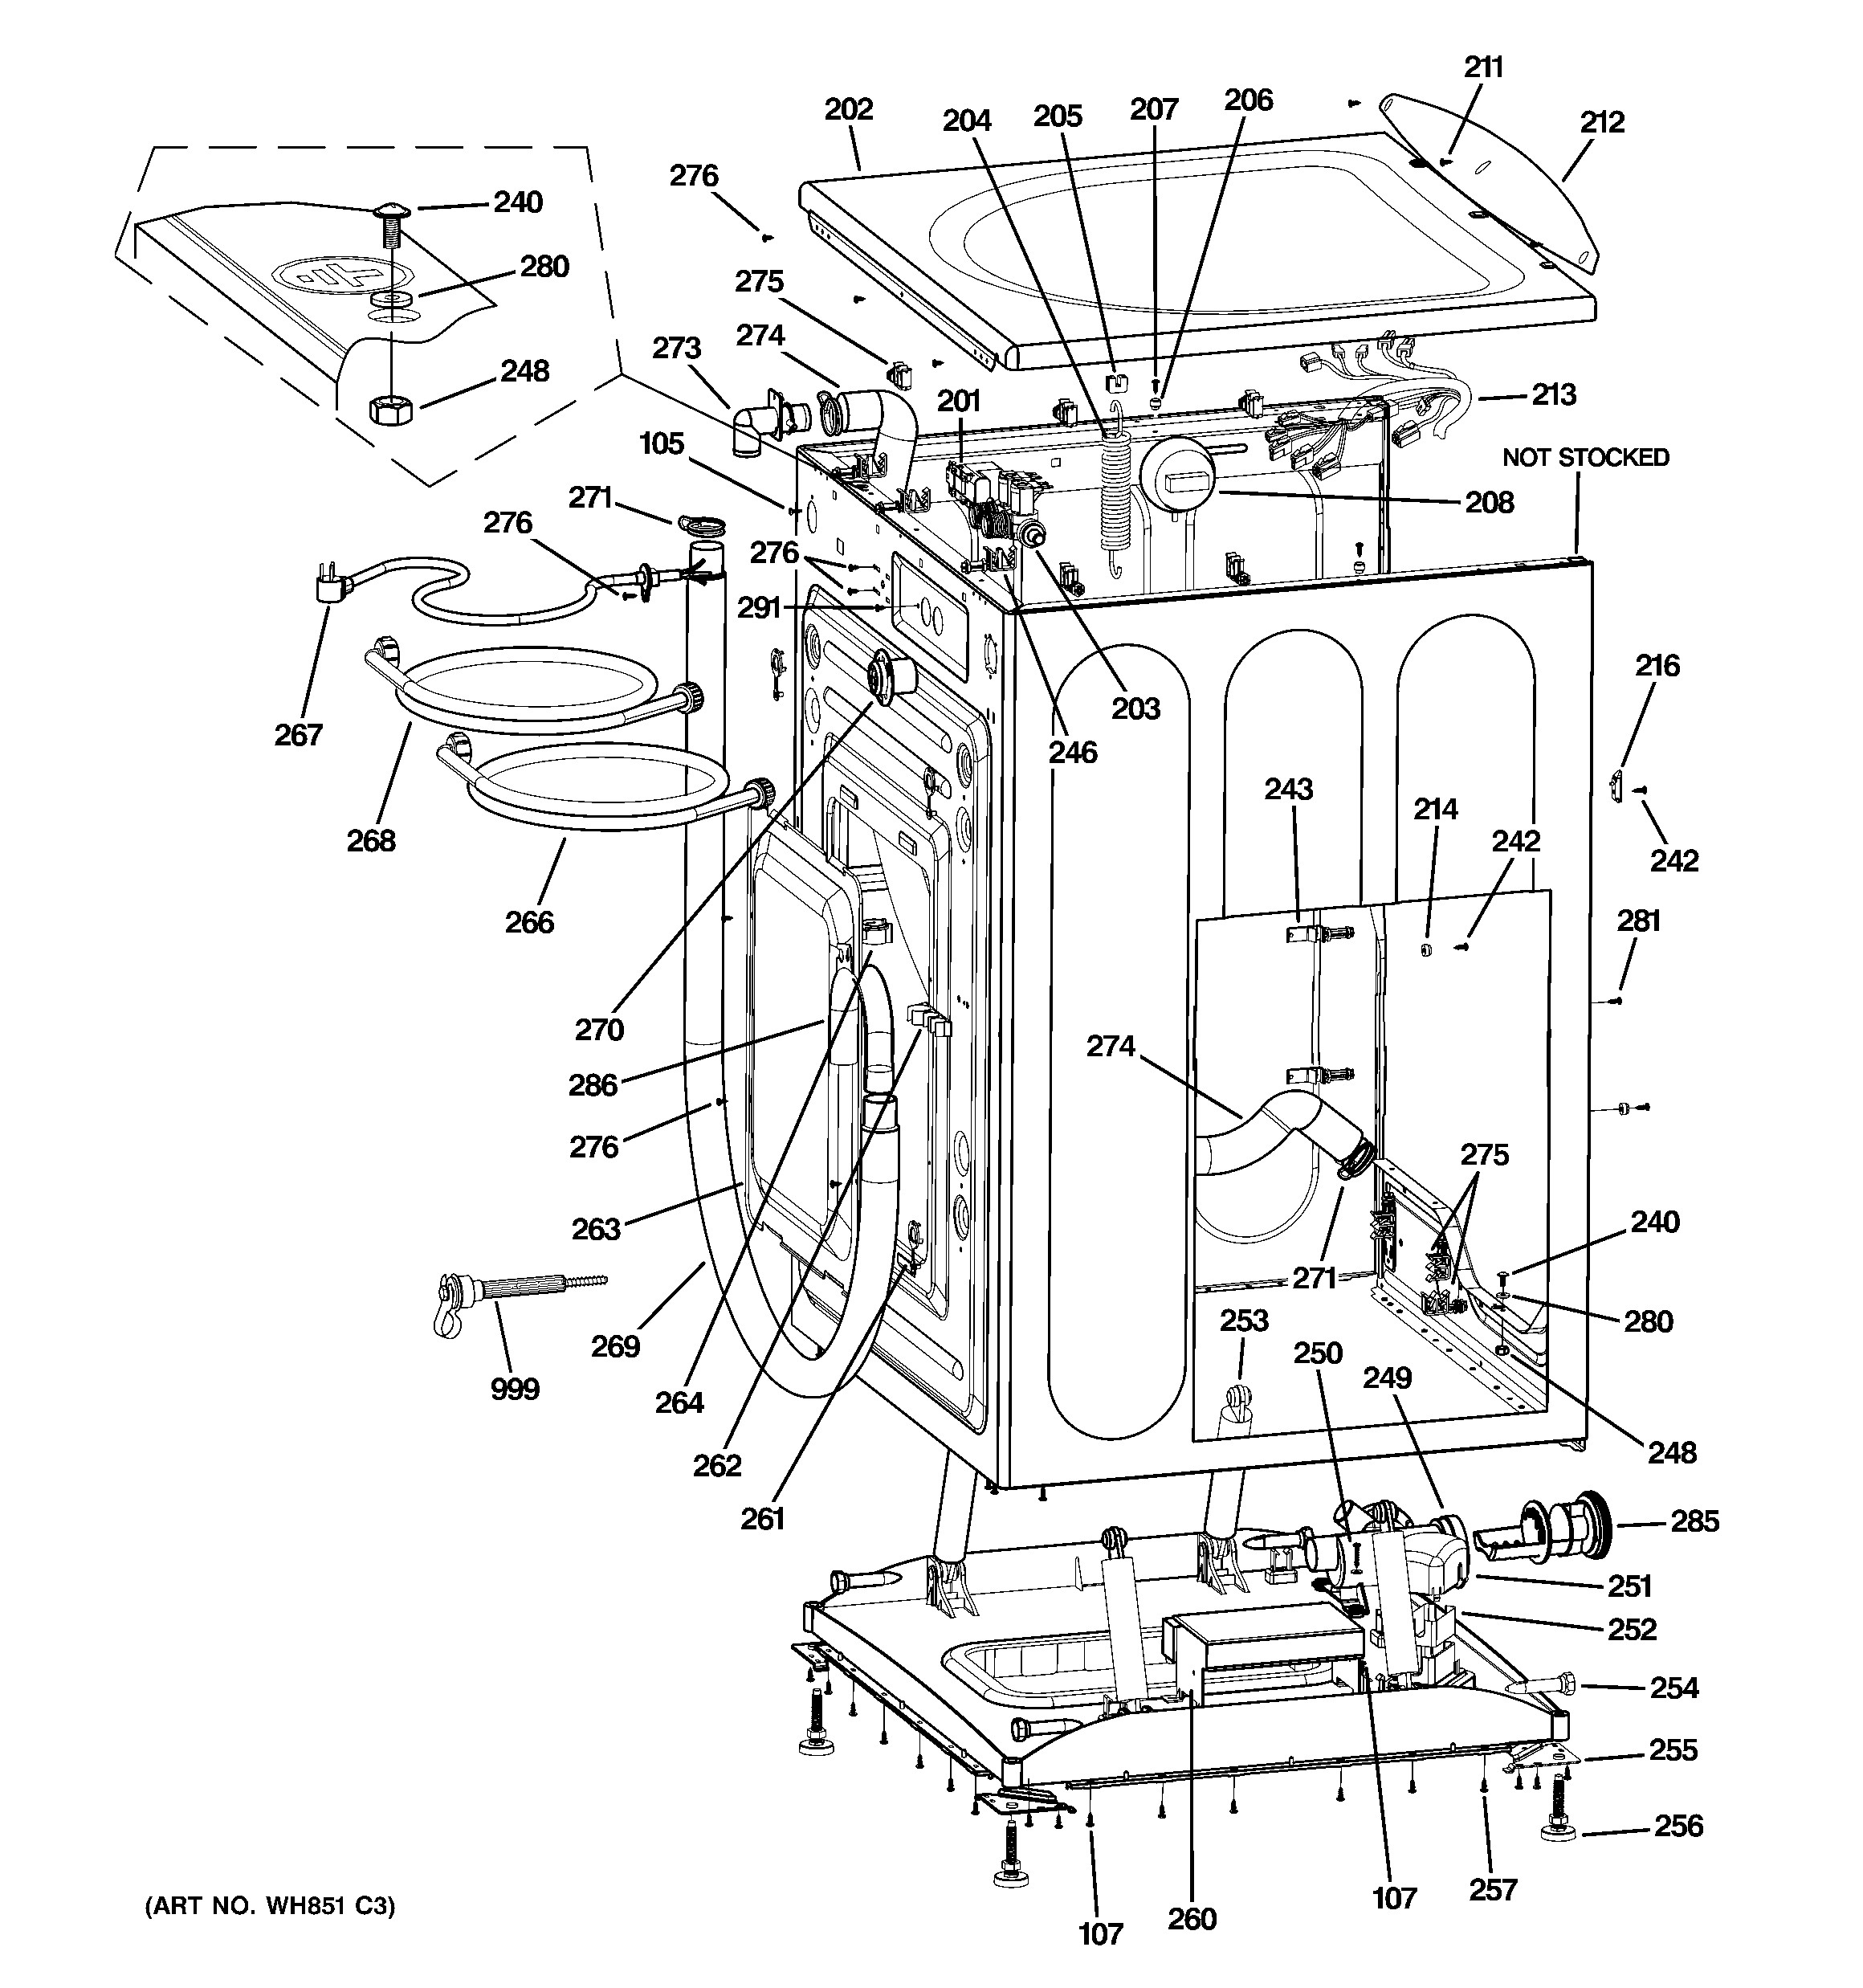 Diagram Of Front Suspension Ge Model Wbvh5100h1ww Residential Washers Genuine Parts Of Diagram Of Front Suspension